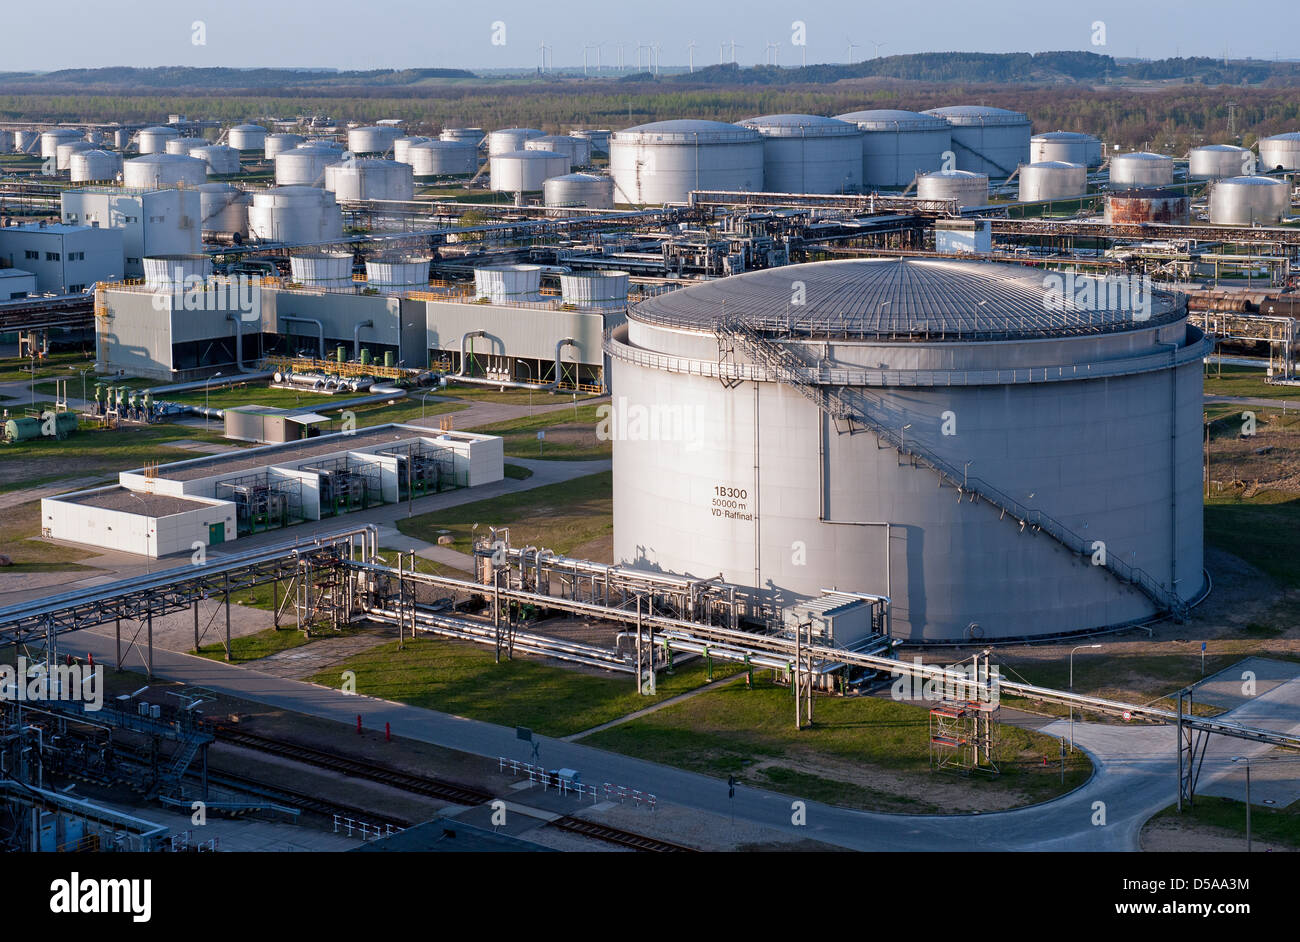 Schwedt Oder Germany Fuel Depot On The Grounds Of The